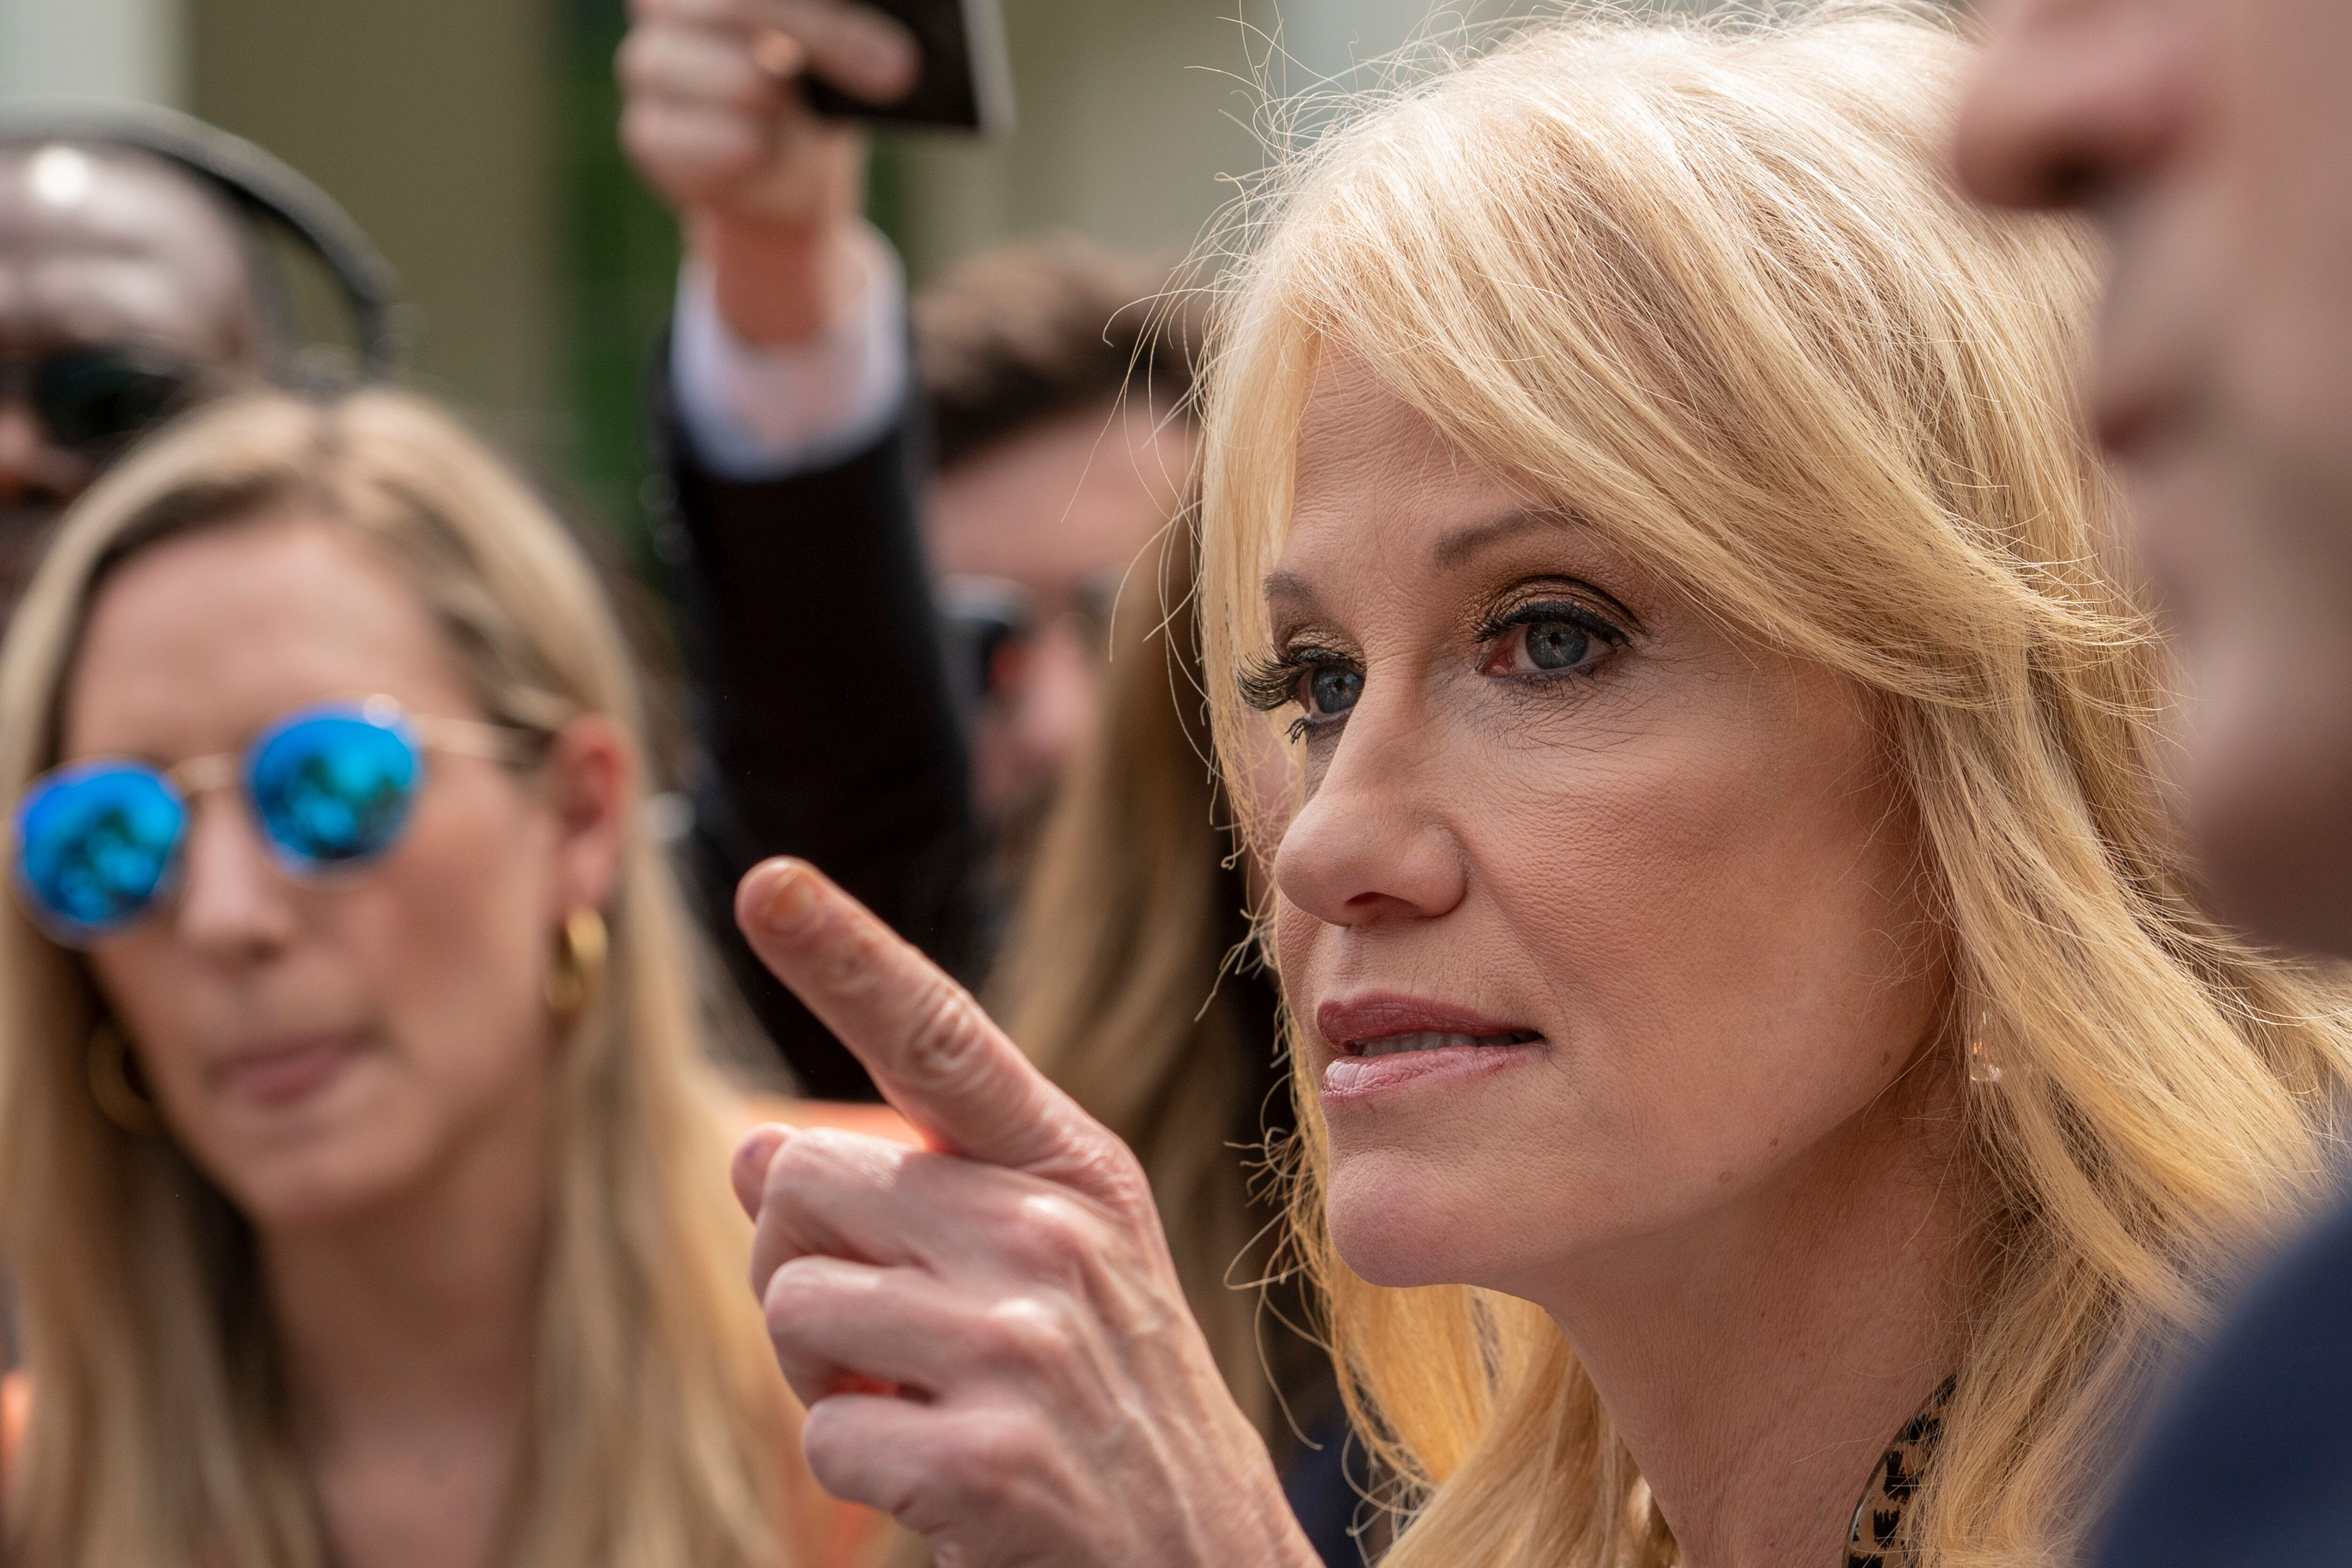 Kellyanne Conway, Counselor to the President Trump, speaks to reporters outside the White House April 18, 2019 in Washington, DC. The Department of Justice today released special counsel Robert Mueller's report on Russian election interference in the 2016 U.S. presidential election. (Photo by Ken Cedeno/Sipa USA)